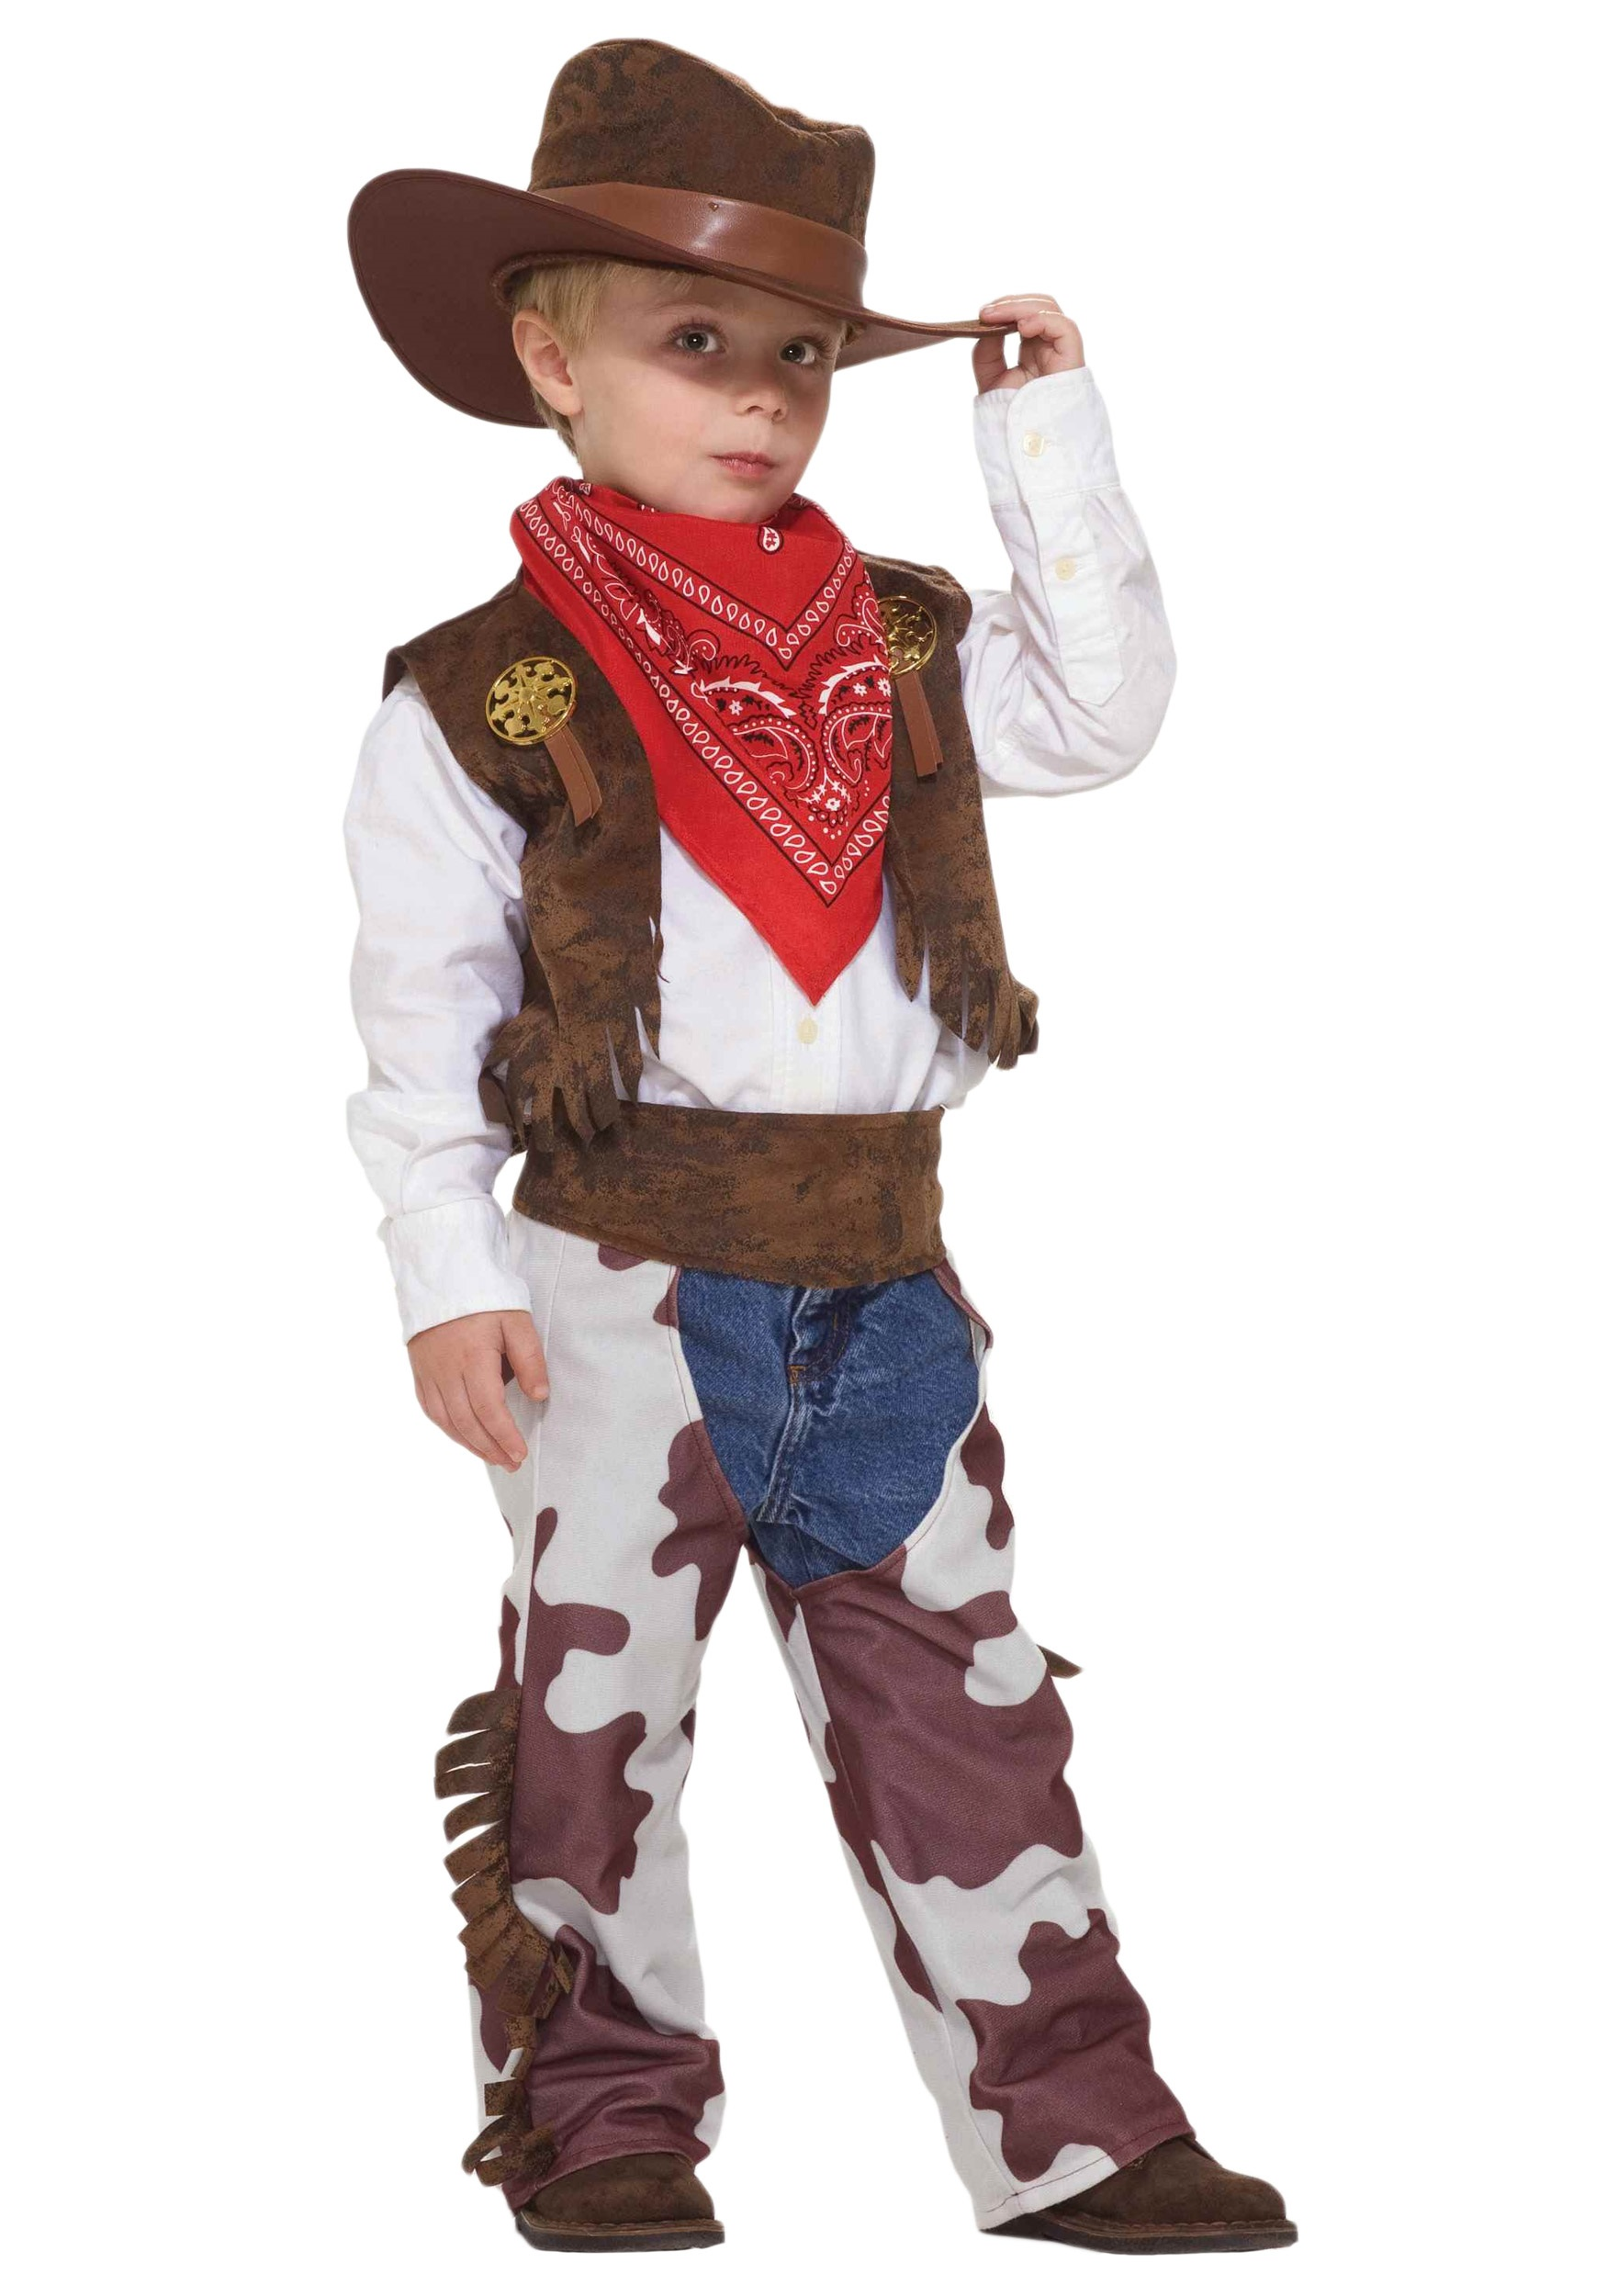 Toddler Cowboy Costume  sc 1 st  Halloween Costumes & Toddler Cowboy Costume - Halloween Costumes